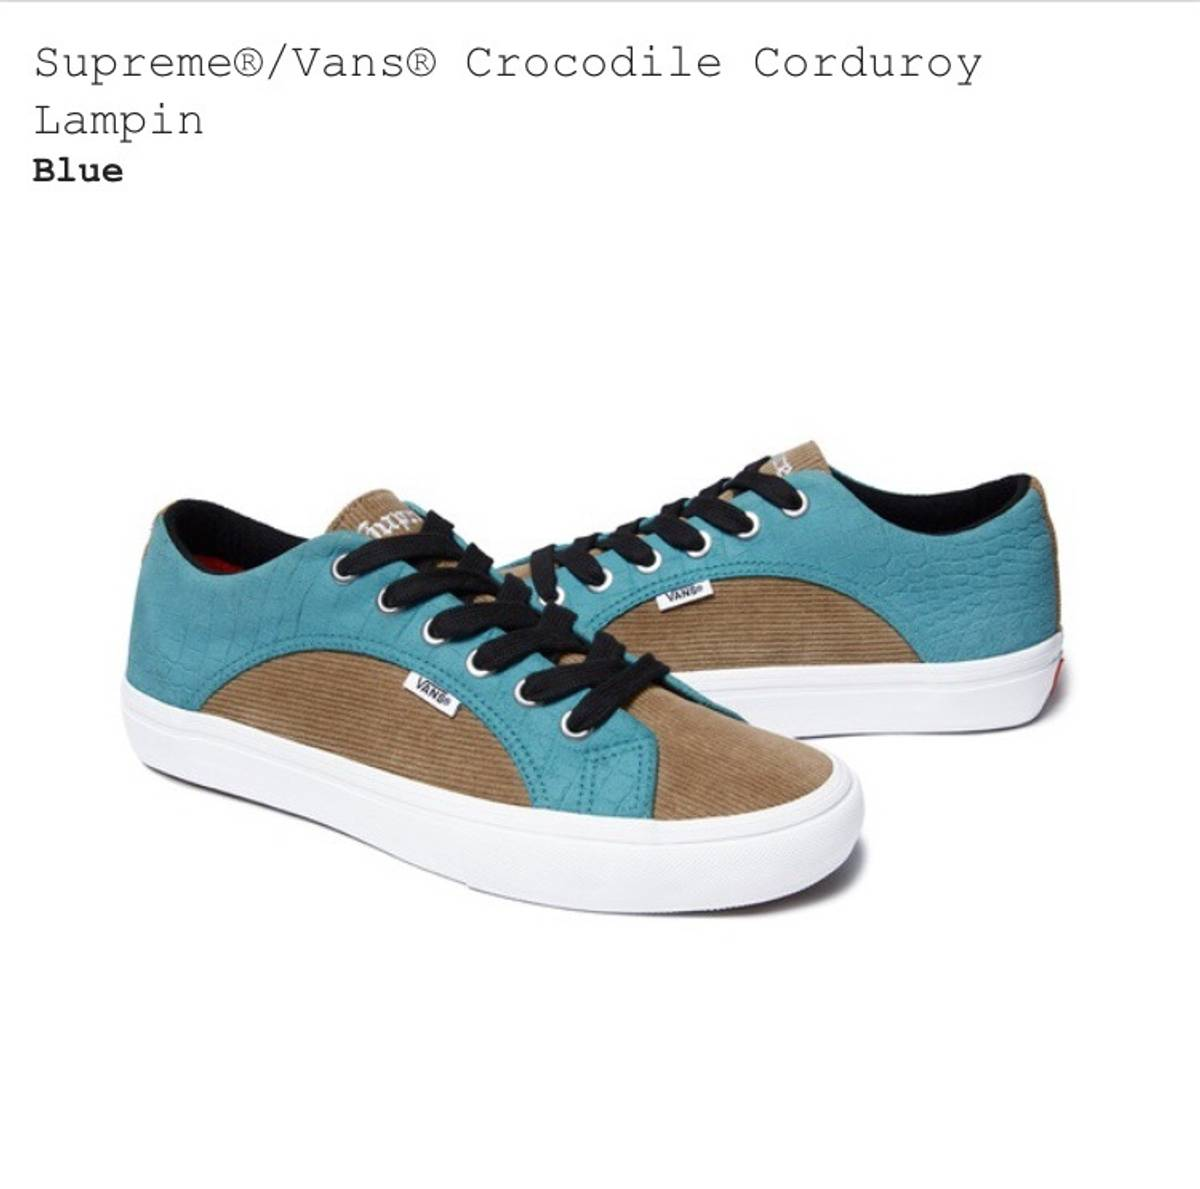 36d860d9b4 Supreme Supreme® Vans® Crocodile Corduroy Lampin (Blue) SS18 IN HAND Size  11 - Low-Top Sneakers for Sale - Grailed